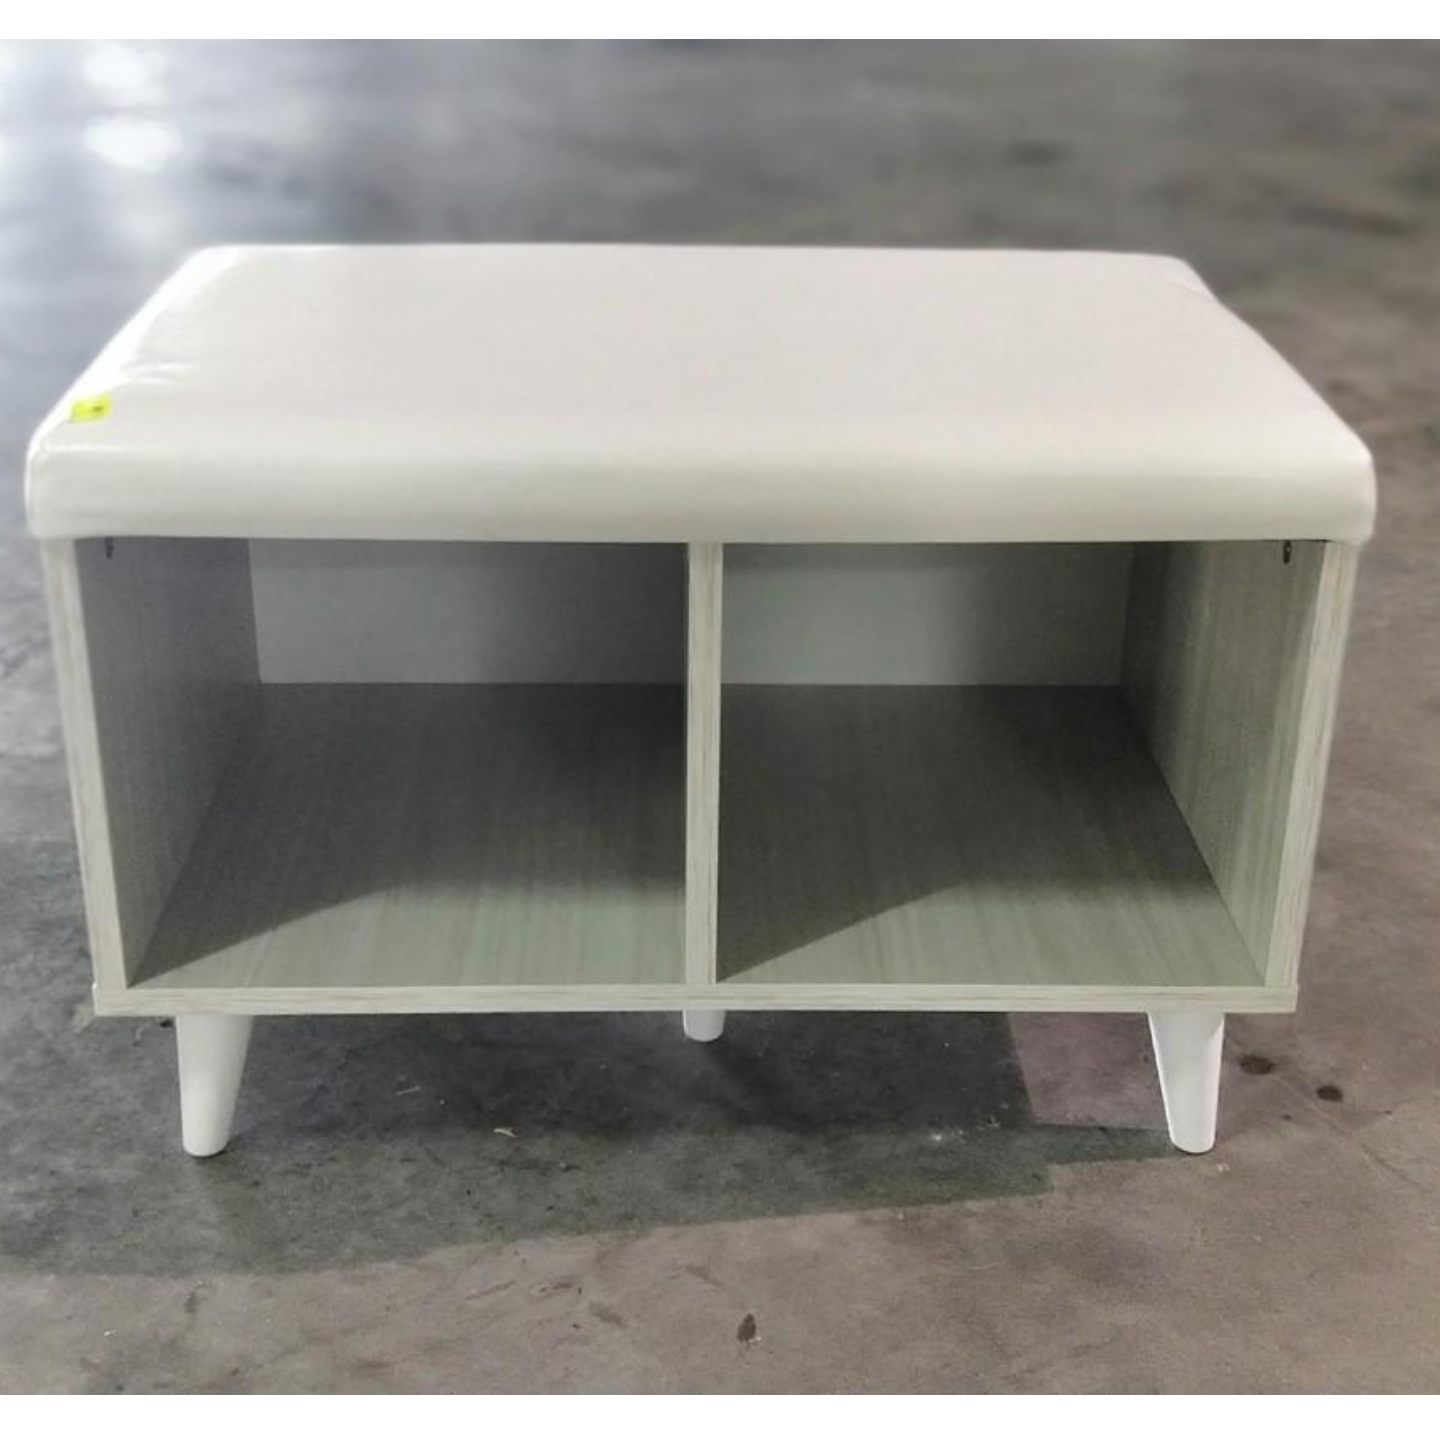 BASSO Bench in White Wash